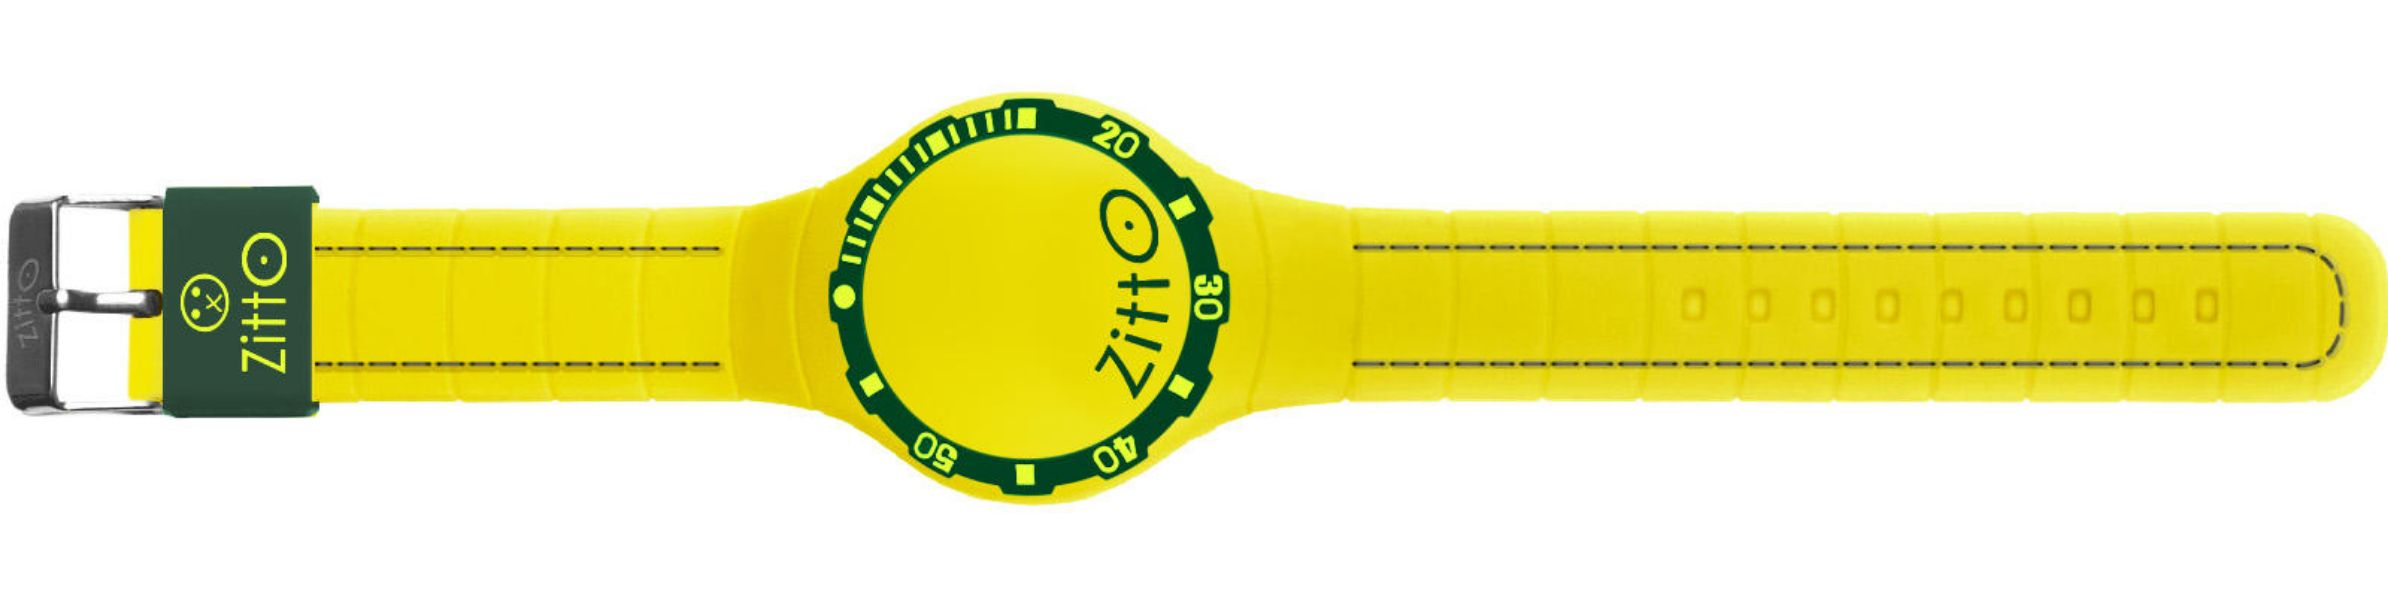 OROLOGIO-44MM-GIALLO-SOFT-TOUCH-ZITTO